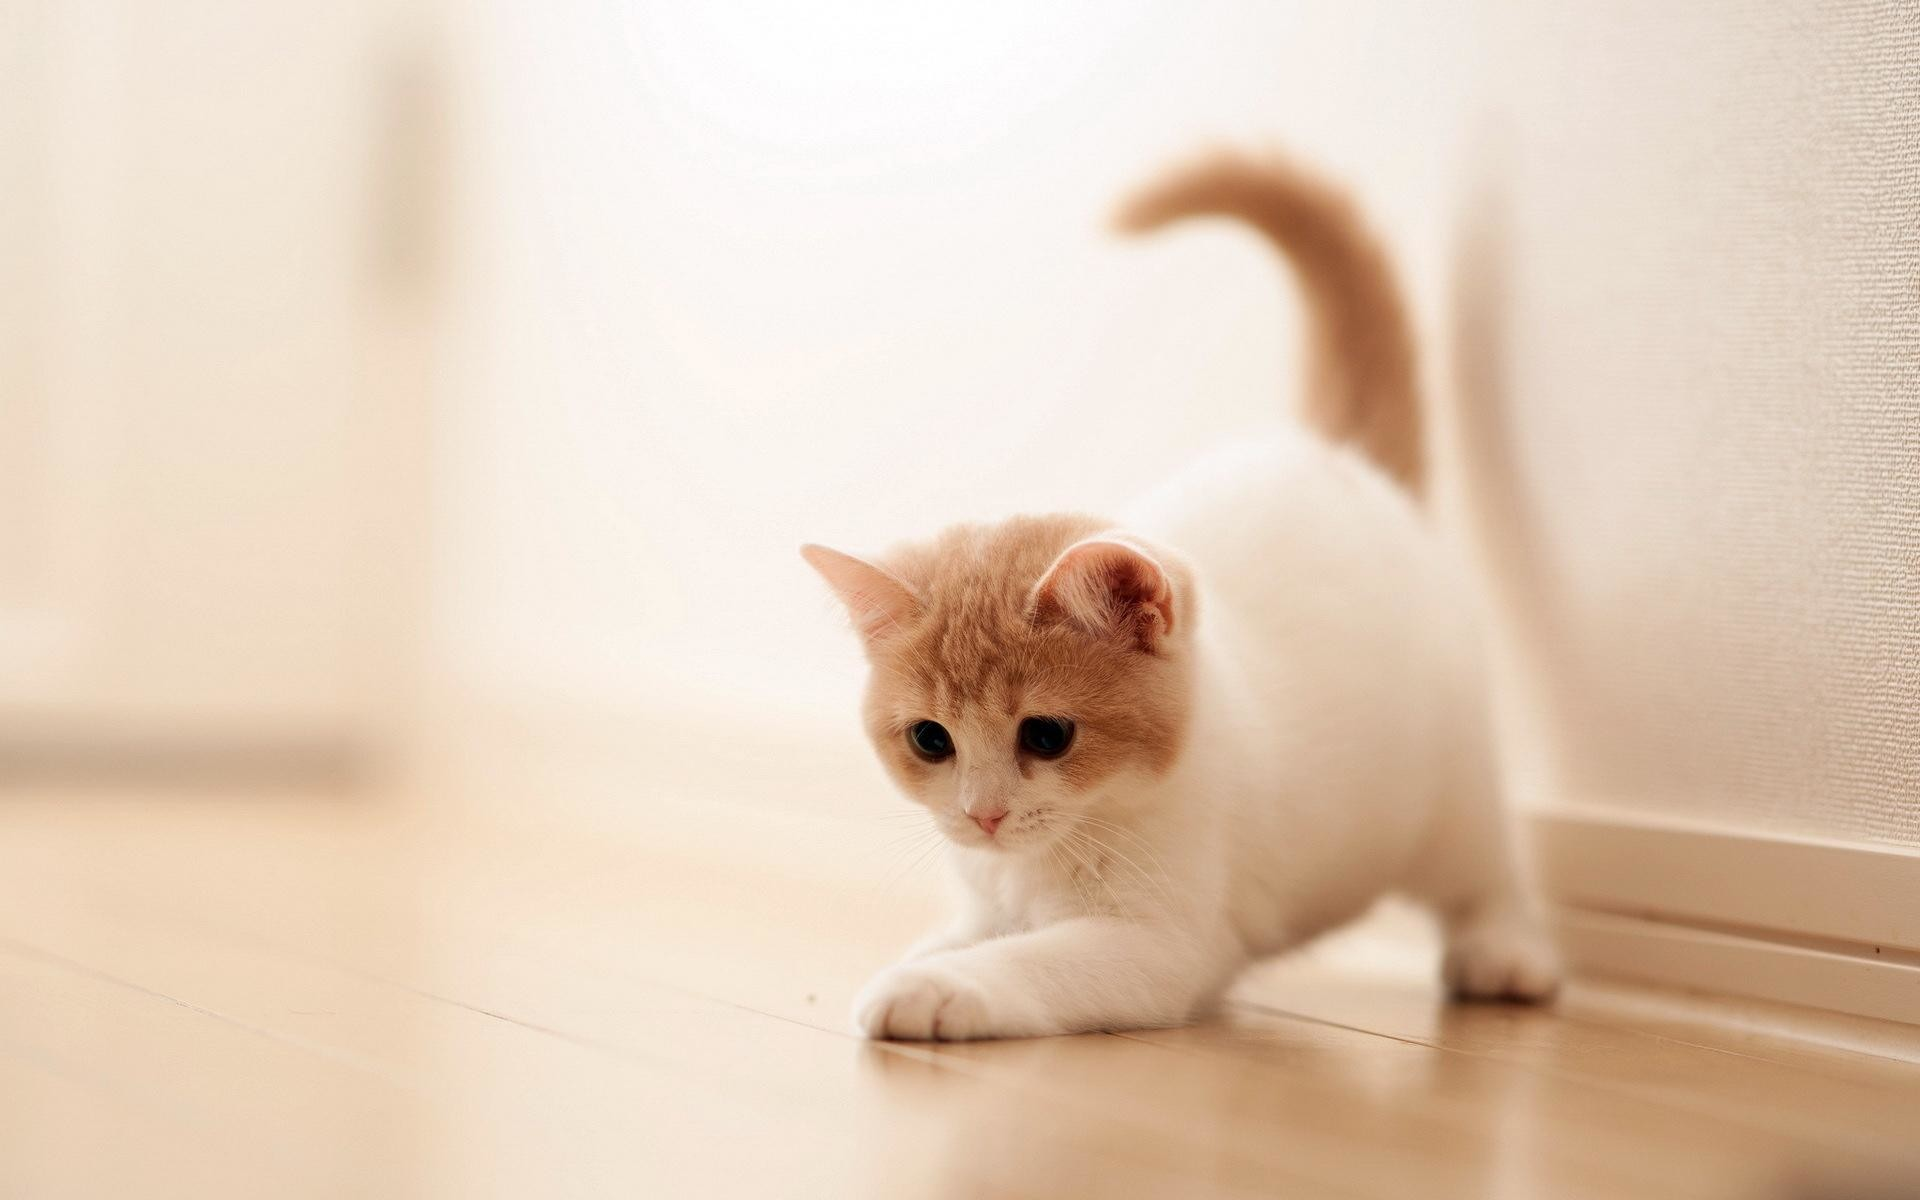 Cat Wallpapers HD Pictures   One HD Wallpaper Pictures Backgrounds .